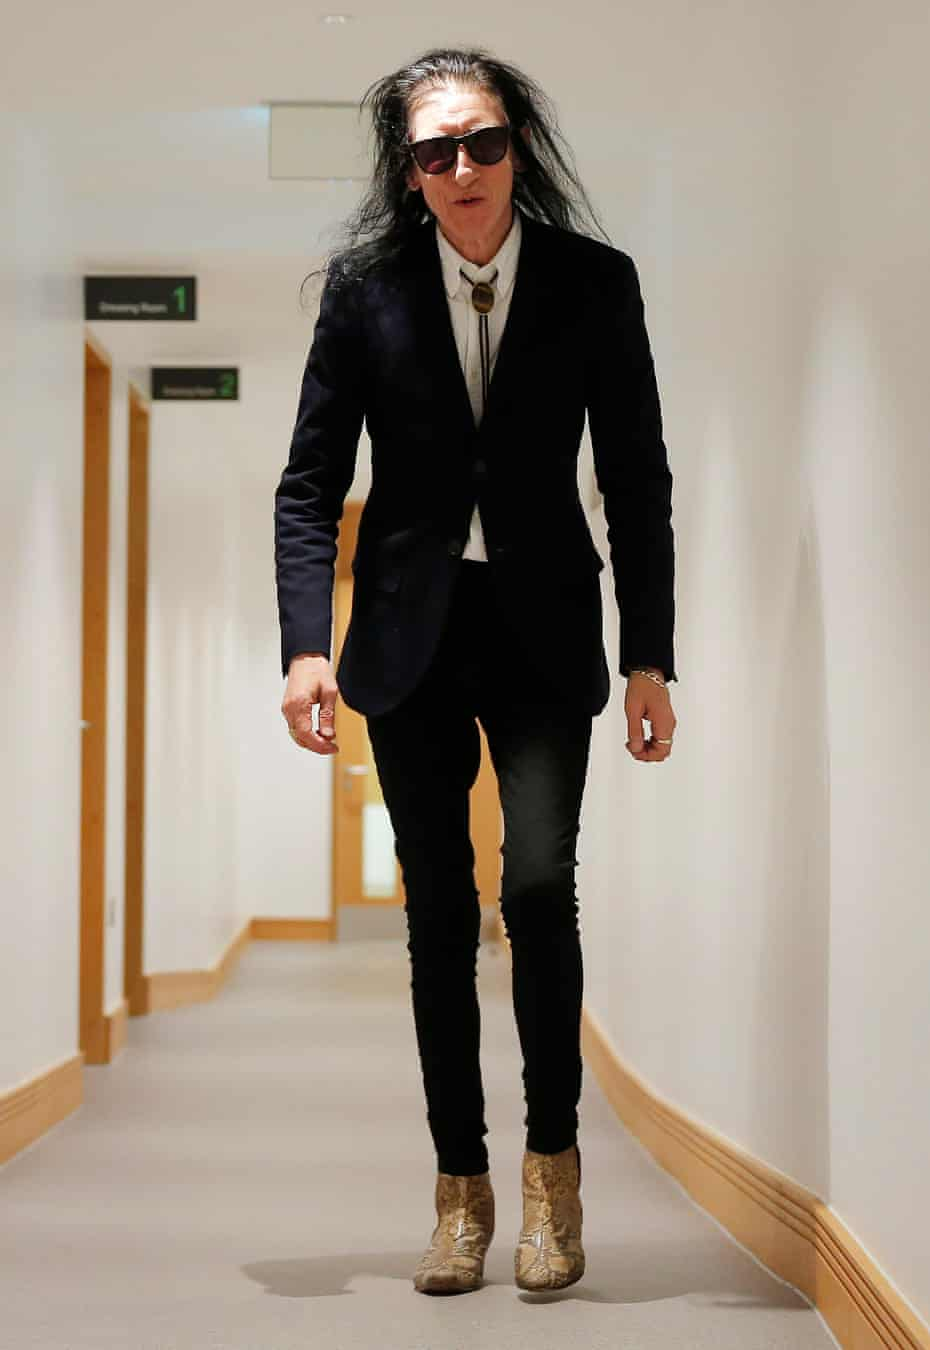 John Cooper Clarke at the Contains Strong Language spoken word festival at the University of Hull in 2017